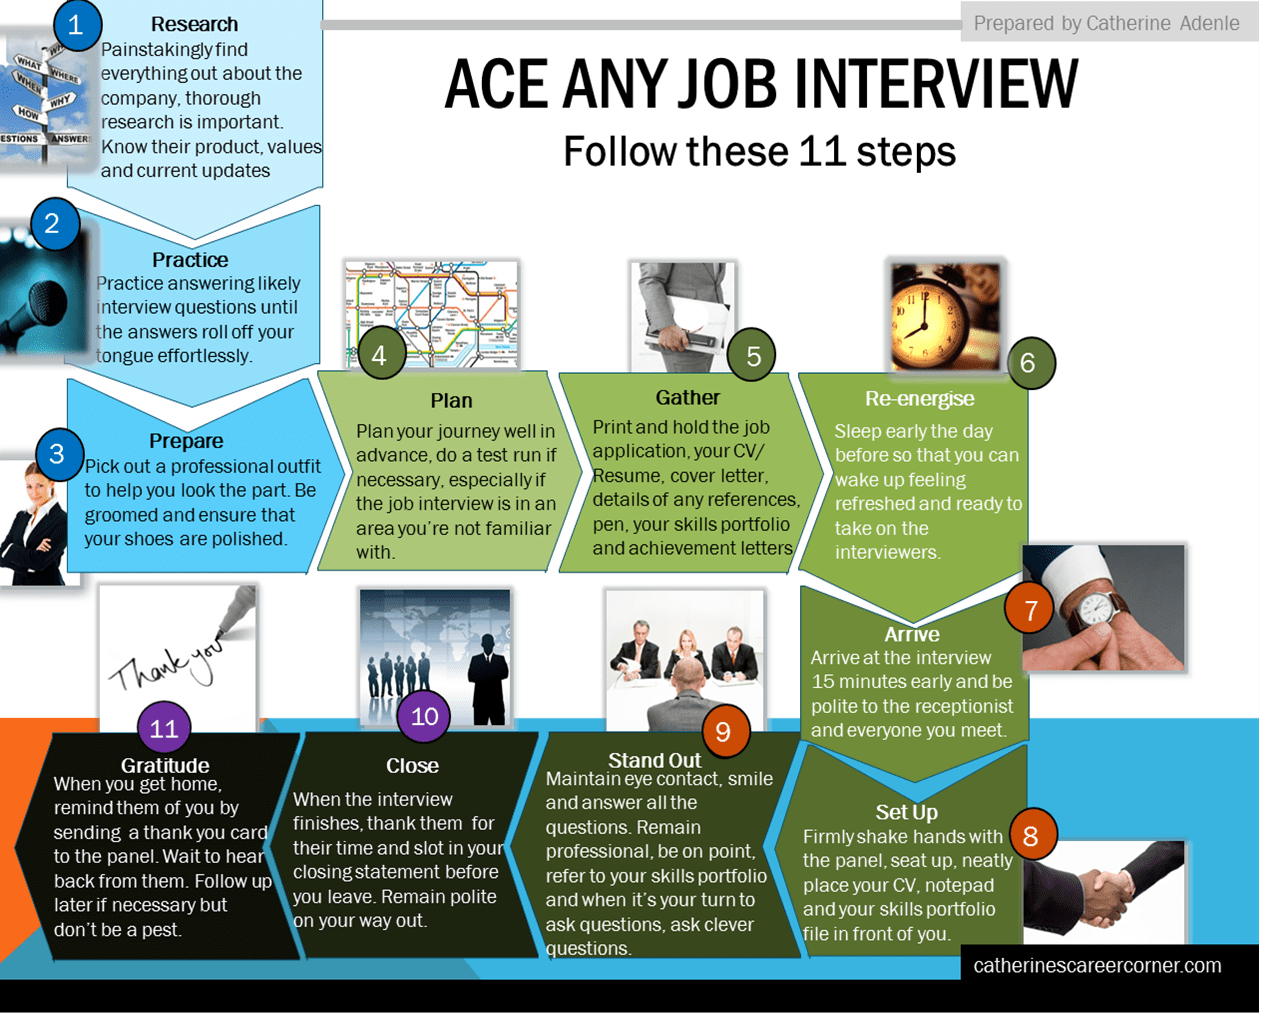 11 Steps to Ace Any Job Interview